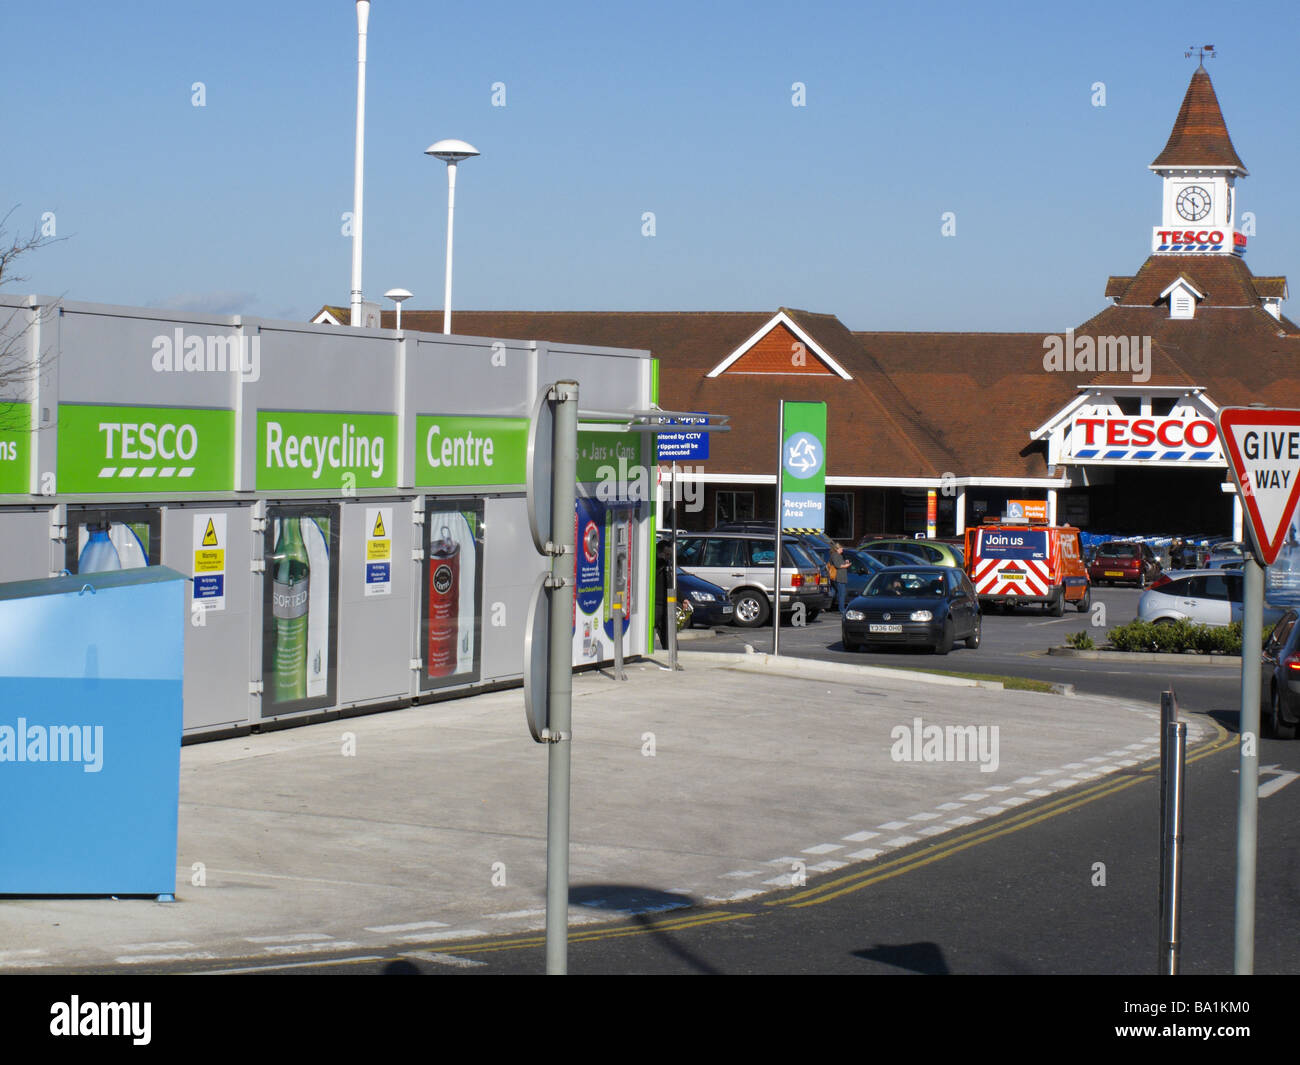 recycle center outside a tesco store Stock Photo